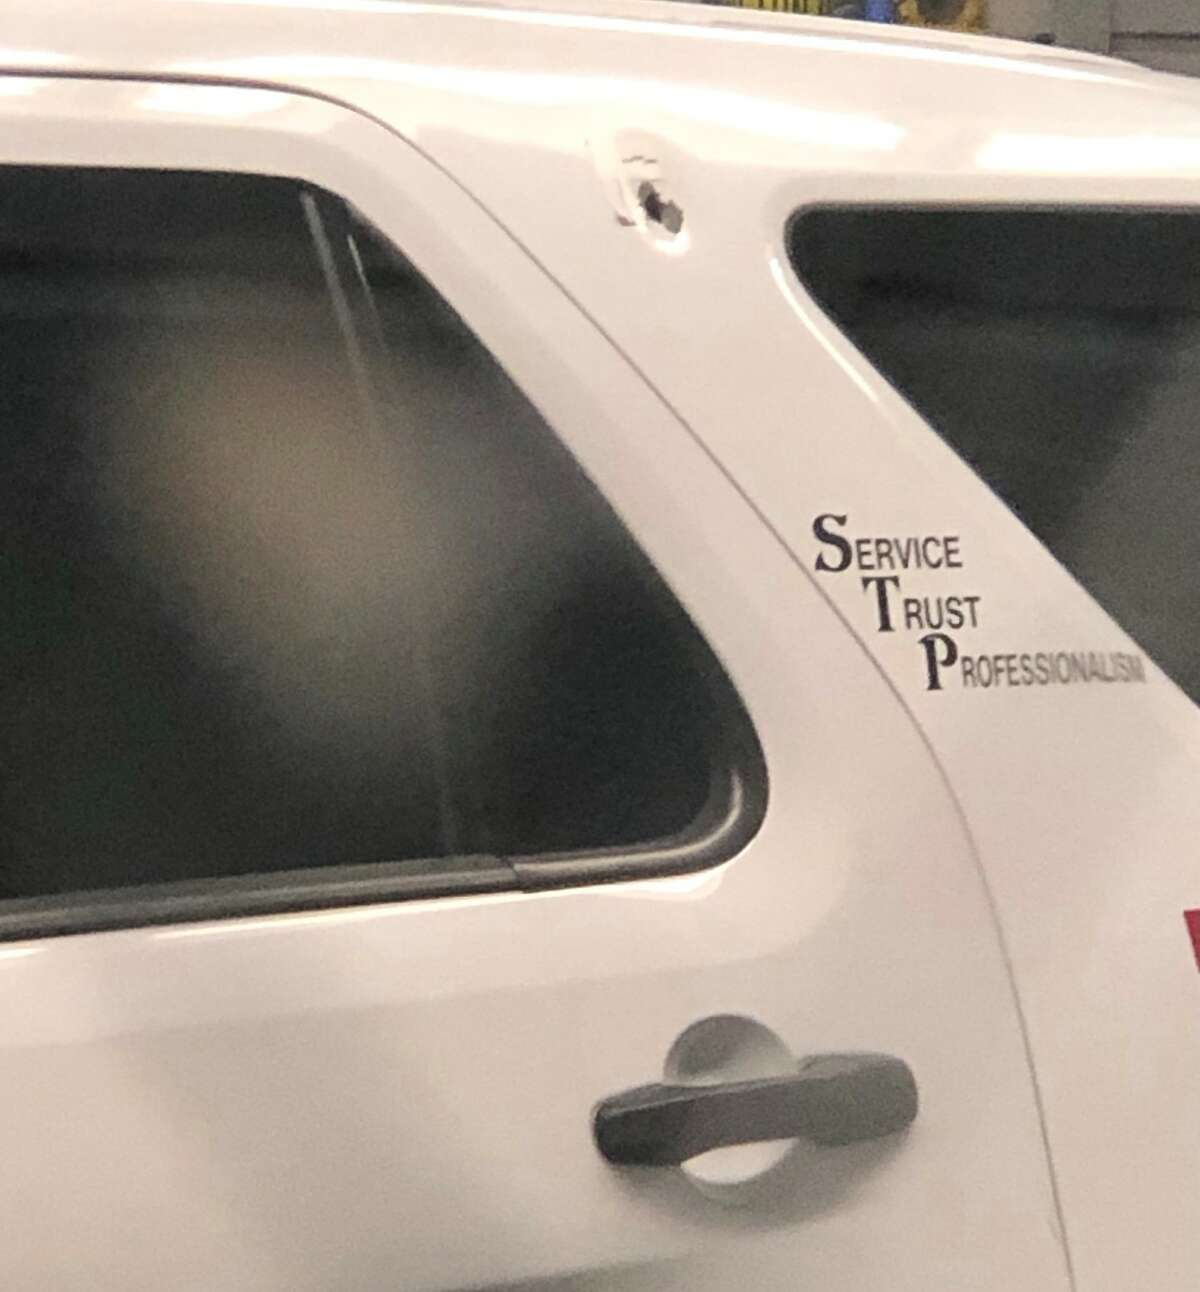 Troy police said one of their vehicles was struck by a bullet on Saturday.